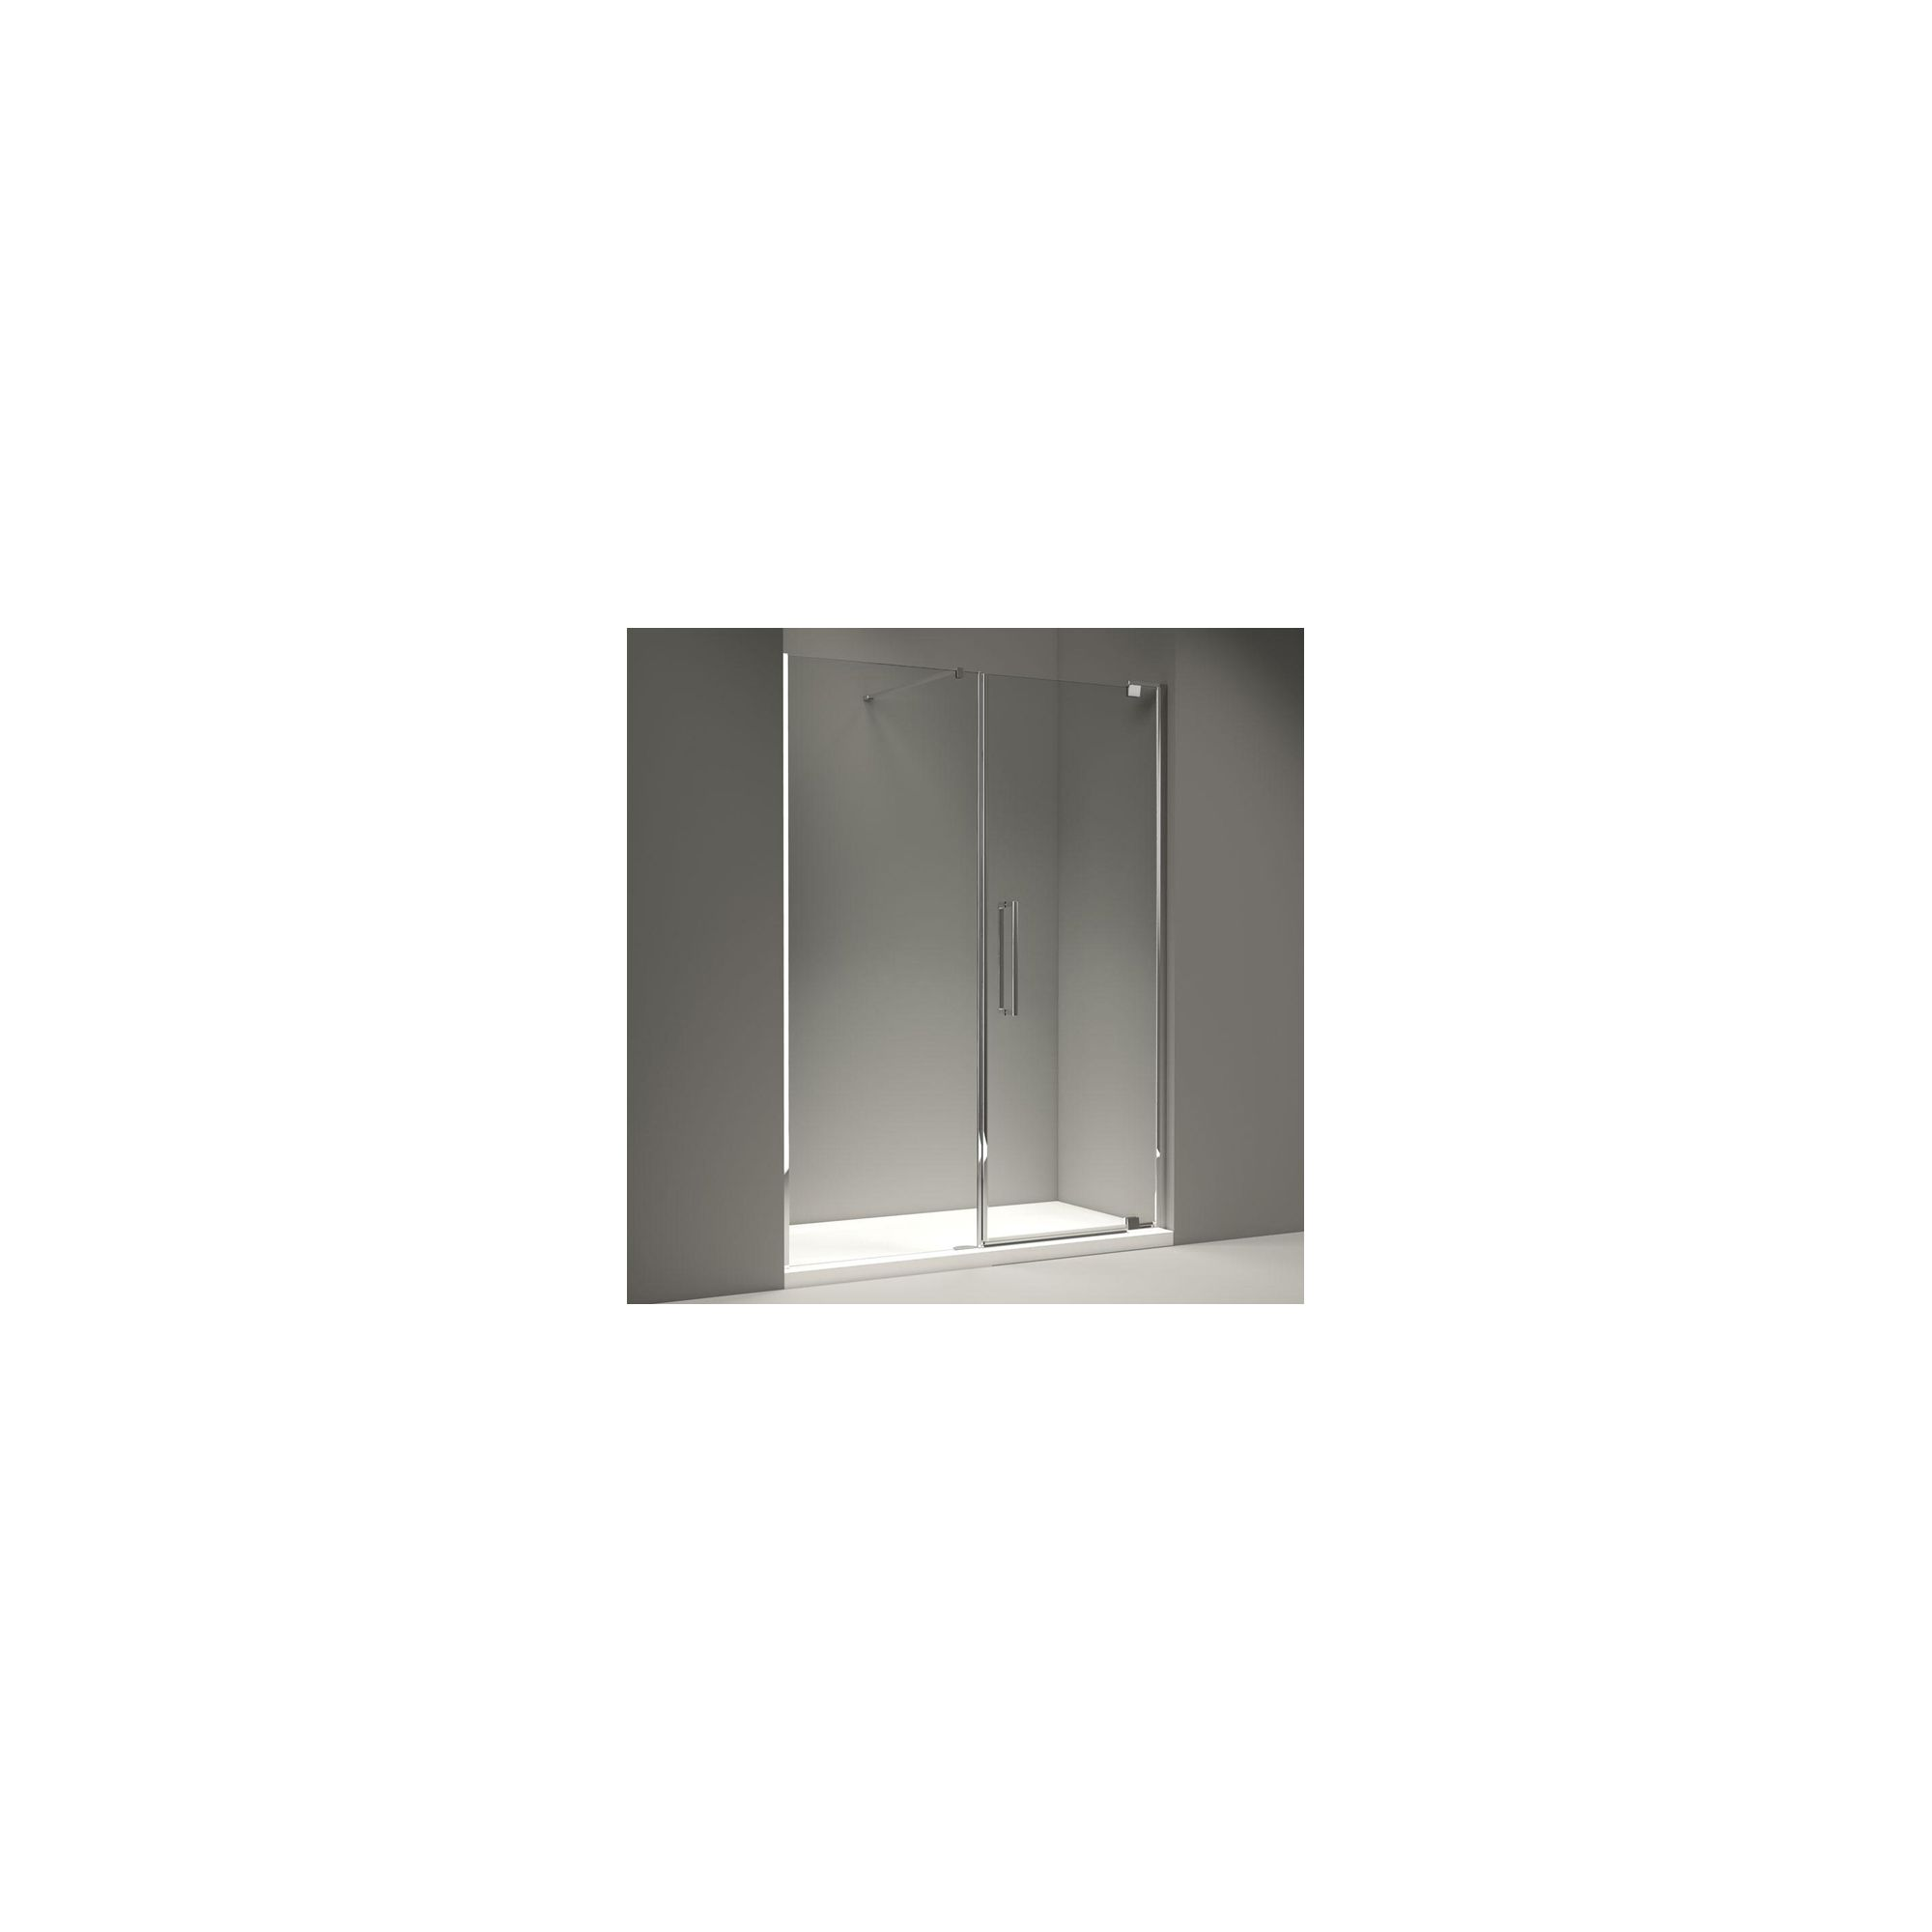 Merlyn Series 10 Inline Pivot Shower Door, 1400mm Wide, 10mm Smoked Glass at Tesco Direct